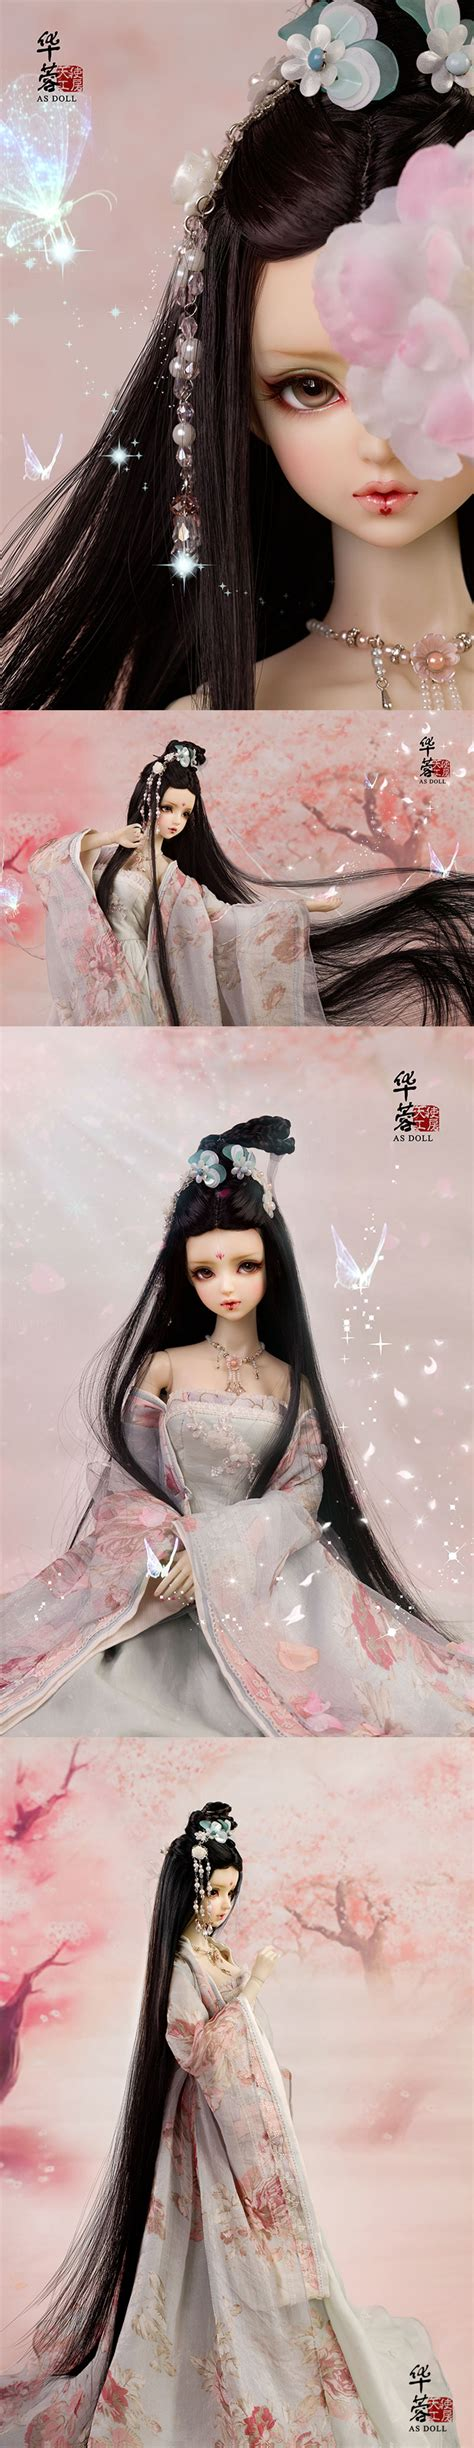 jointed doll size as agency bjd limited edition hua rong black 62cm